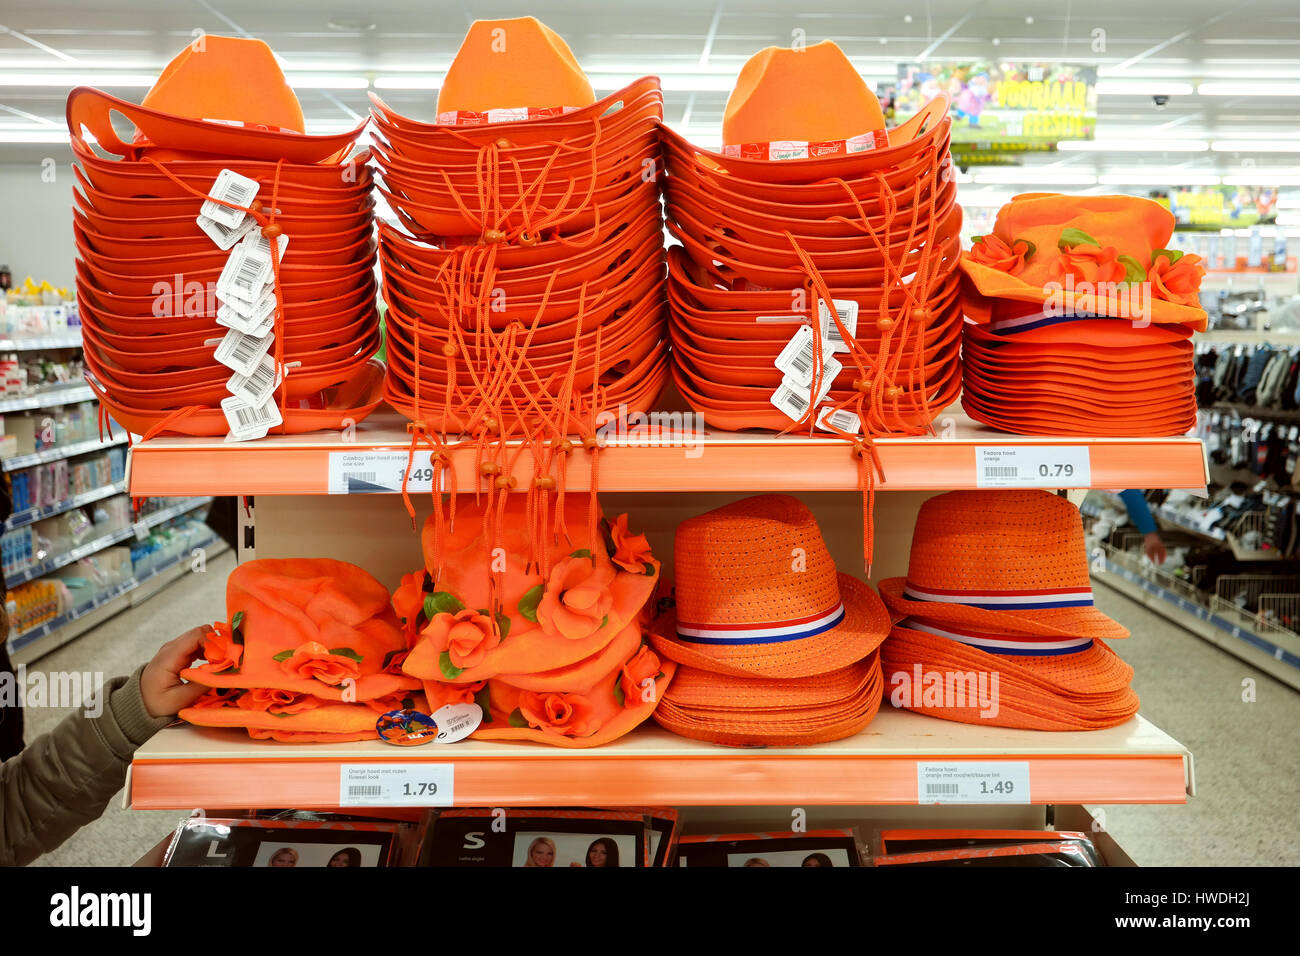 Display with headgear for a orange outfit to celebrate Dutch kings day. - Stock Image